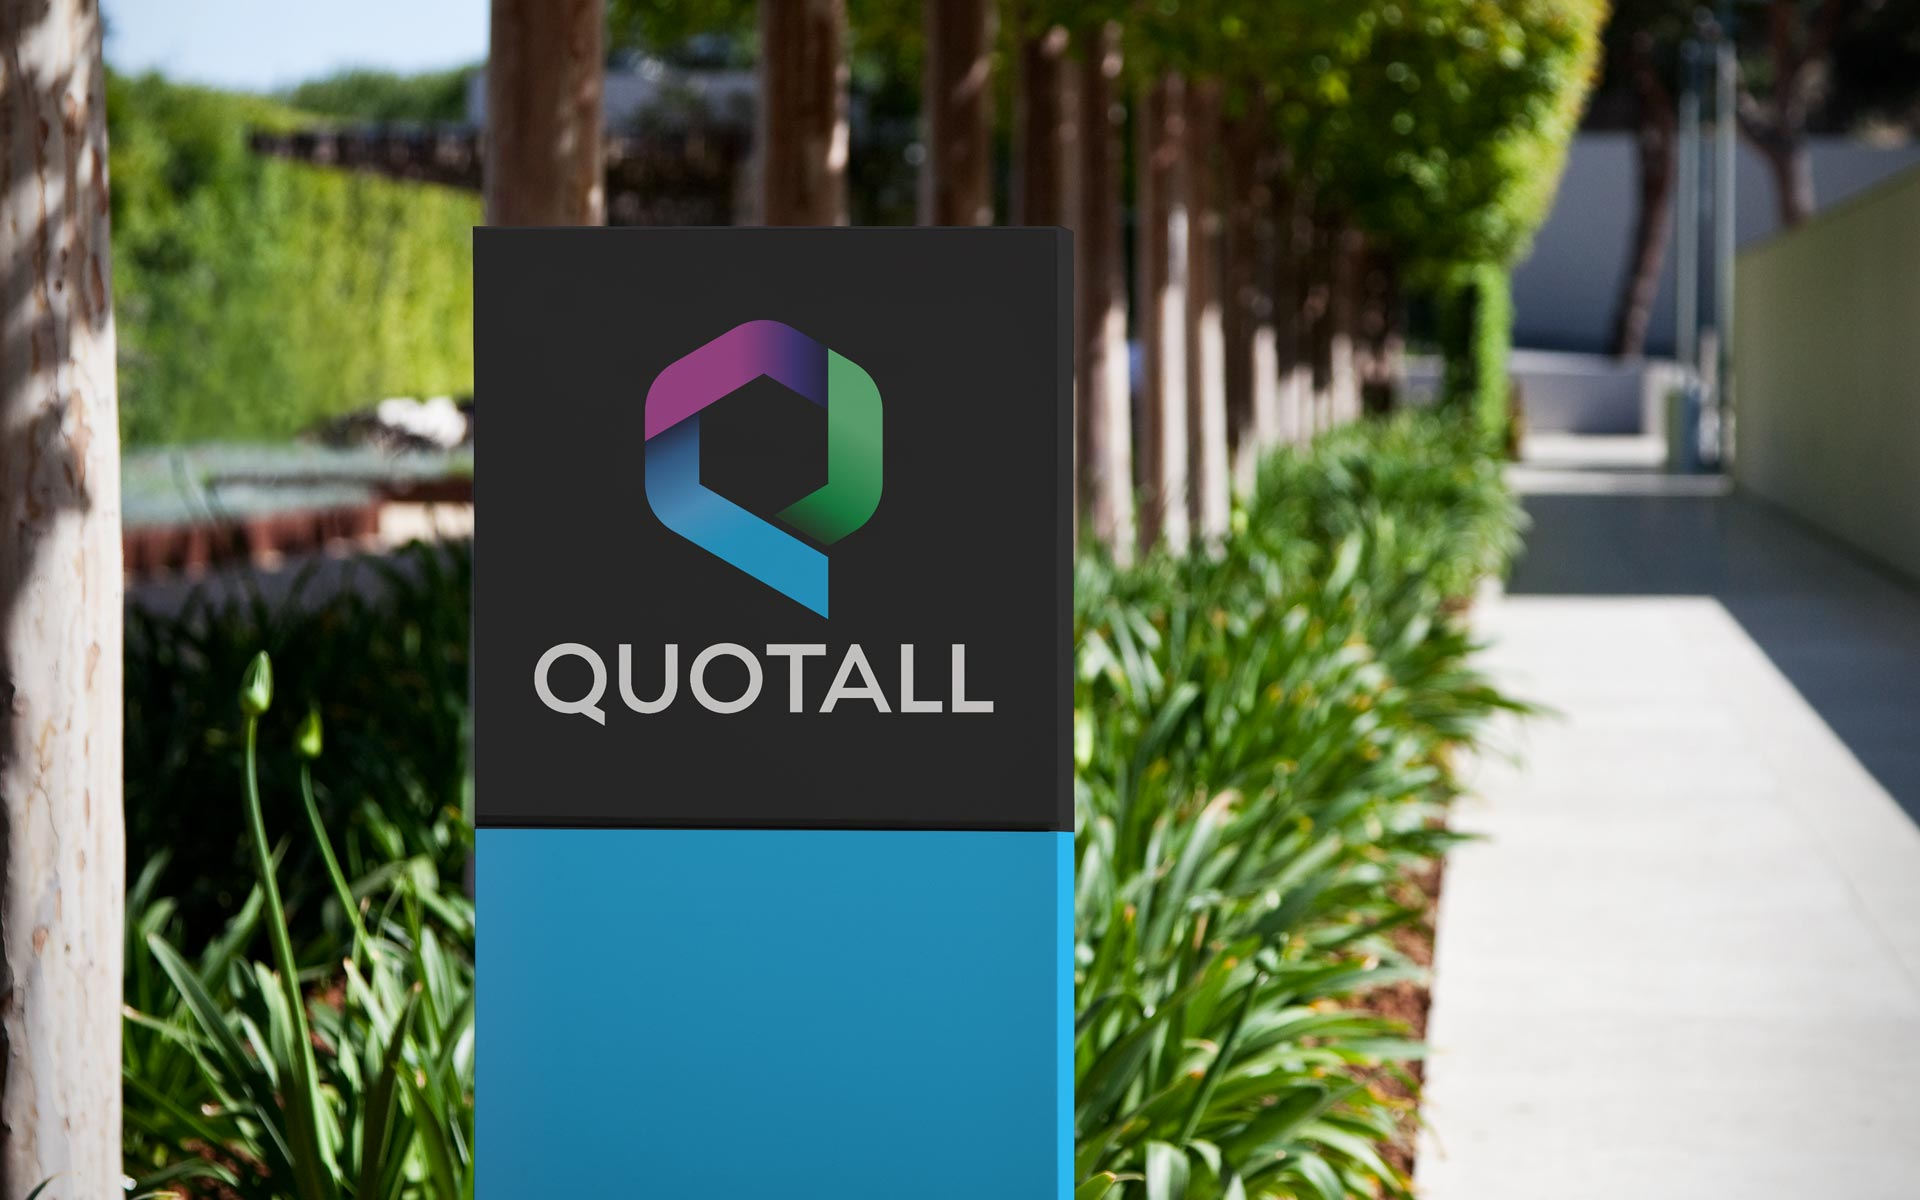 Outdoor Sign for Quotall, an Insurance Company Rebrand